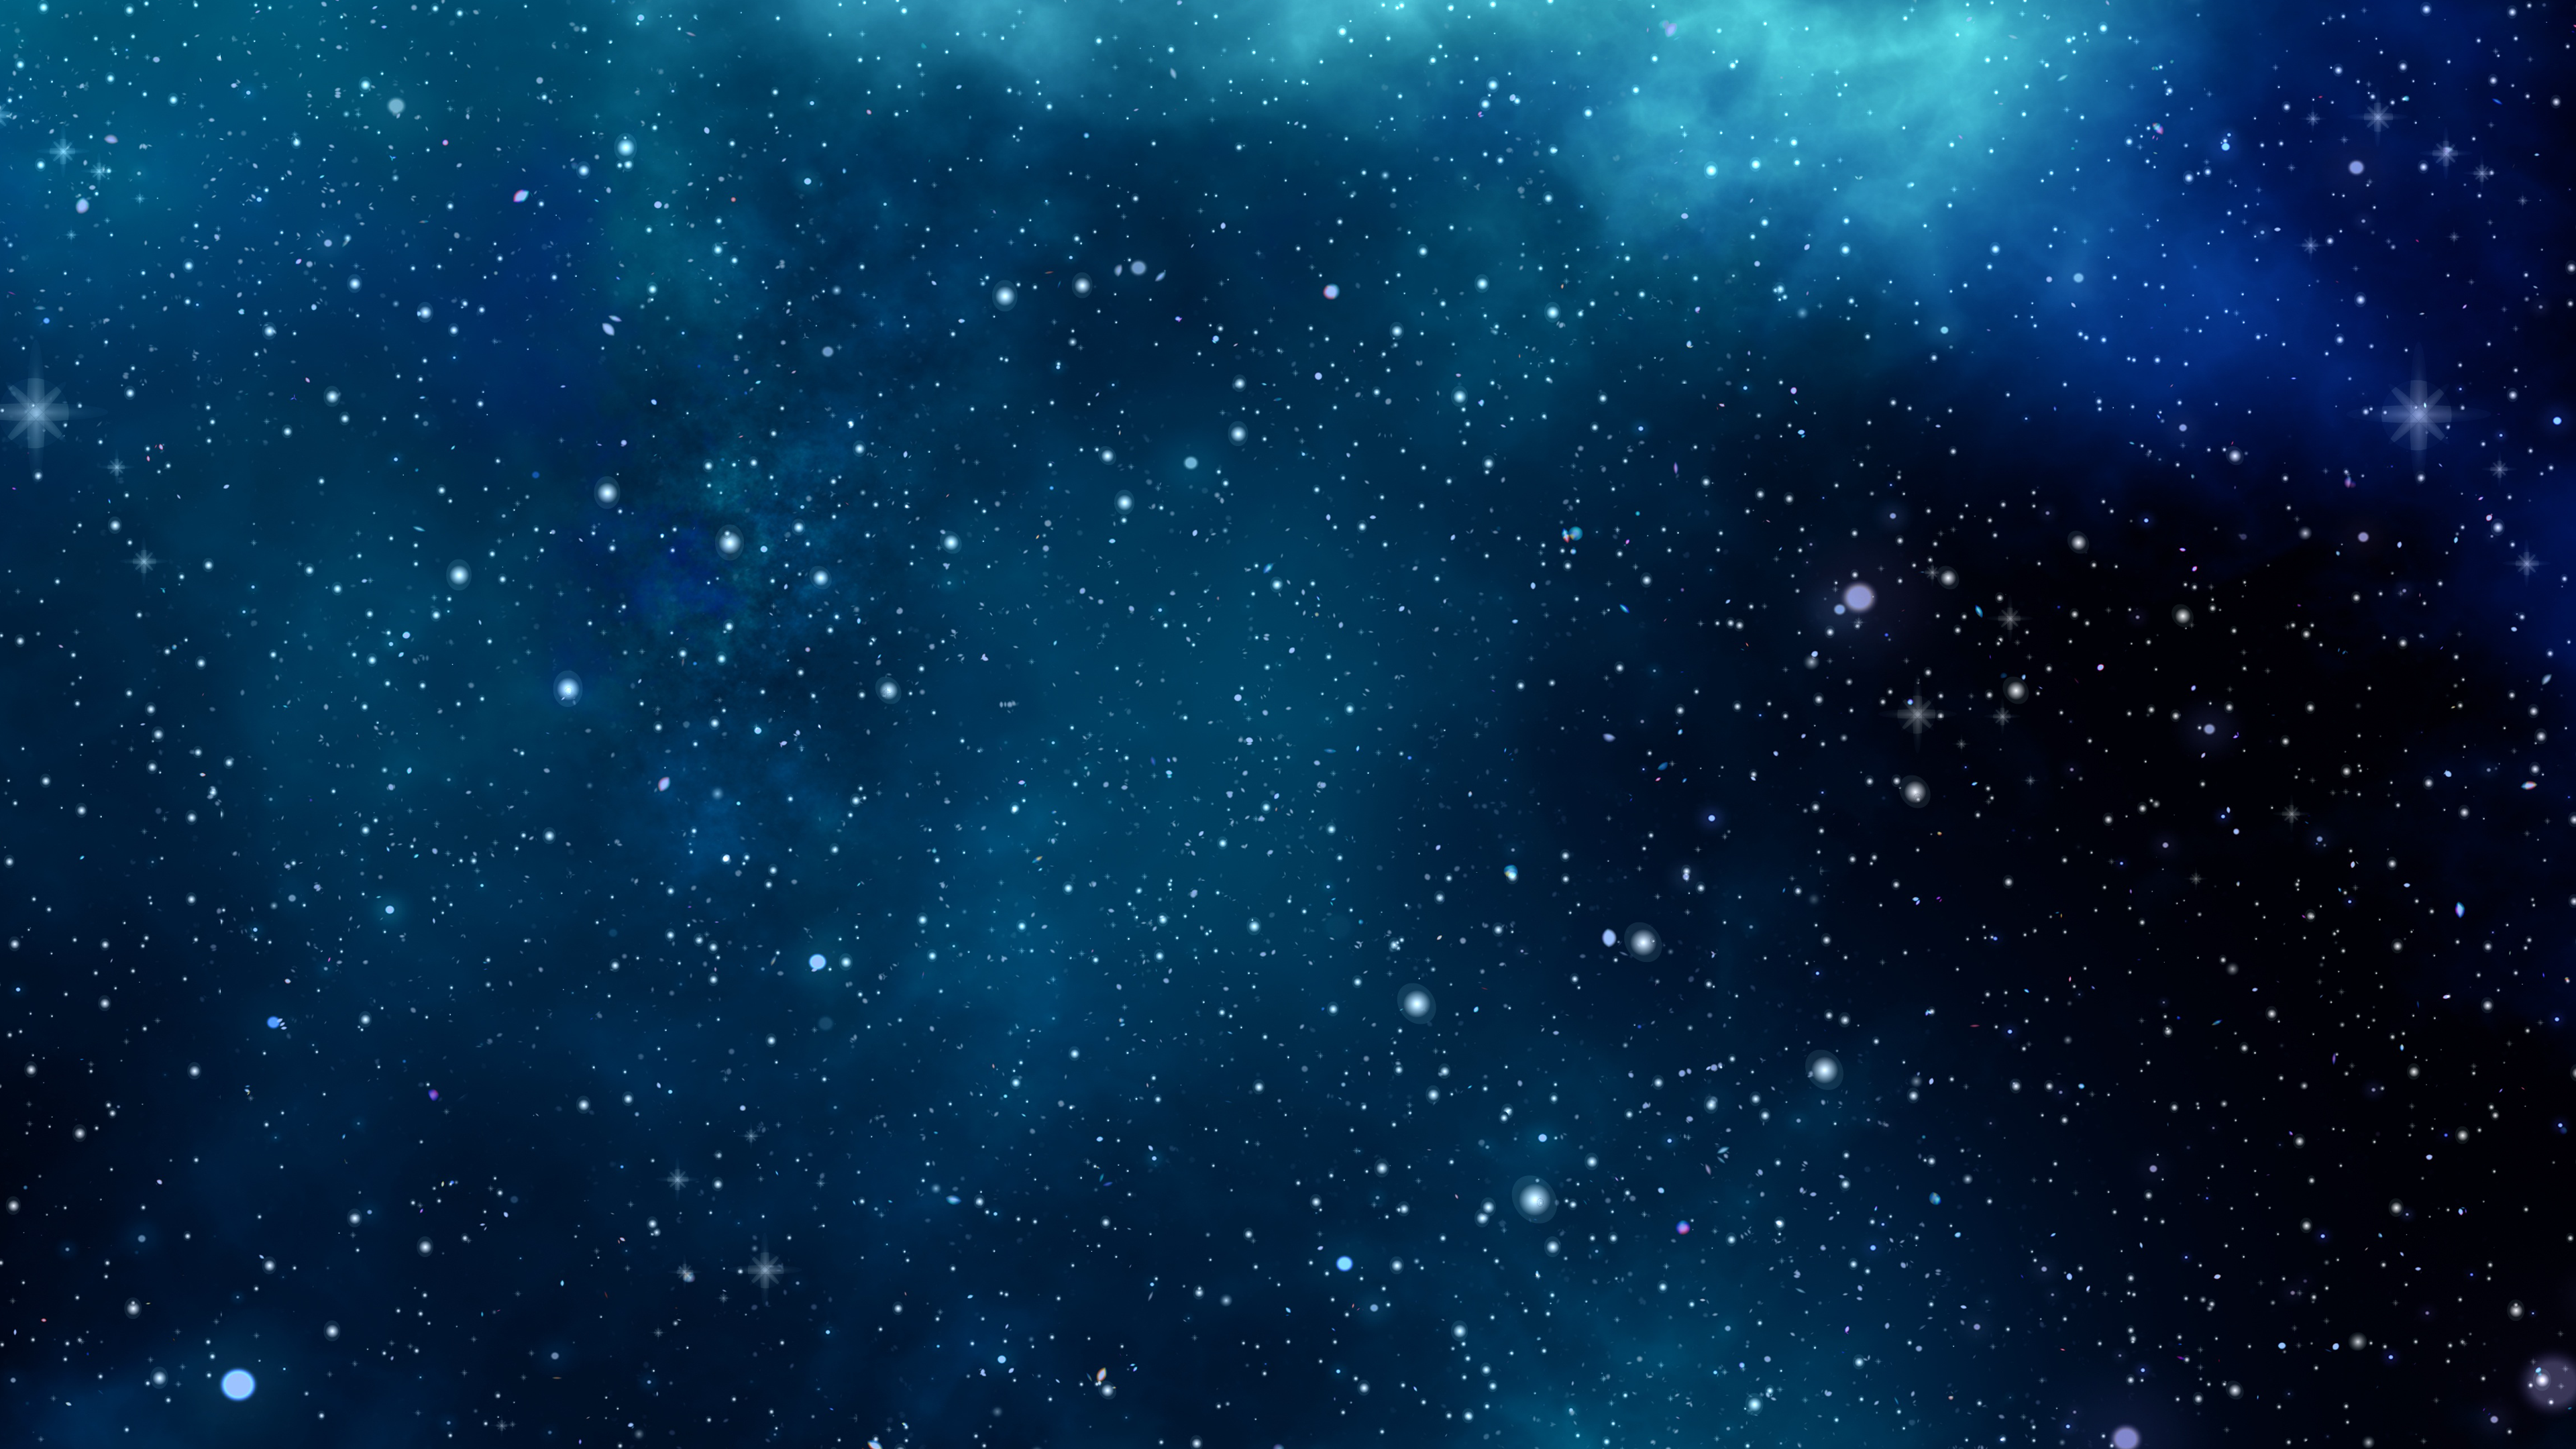 Wallpaper Collection 37 Best Free Hd Space Desktop Backgrounds Background To Download Pc Wallpaper Space Blue Galaxy Wallpaper Space Desktop Backgrounds